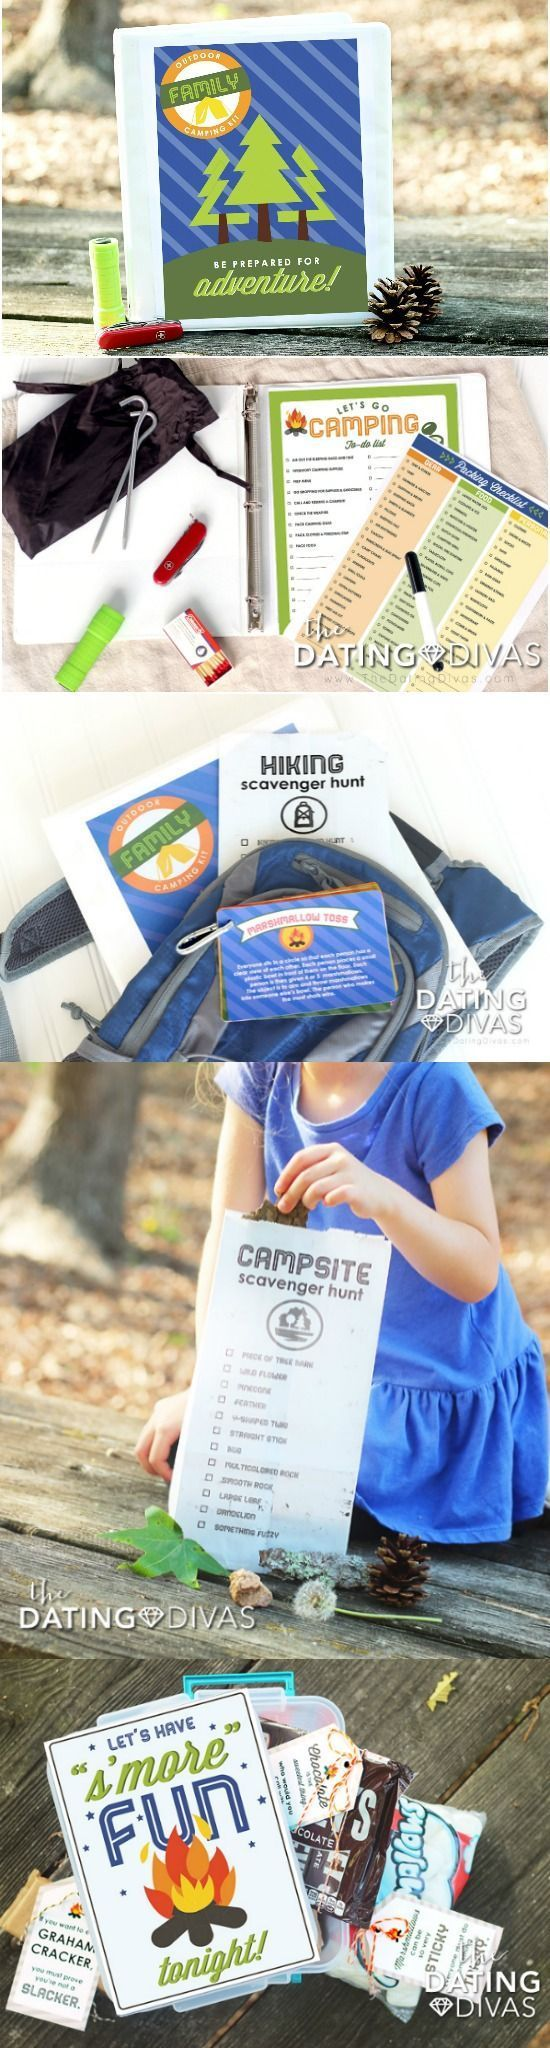 25+ best ideas about Camping organization on Pinterest ...